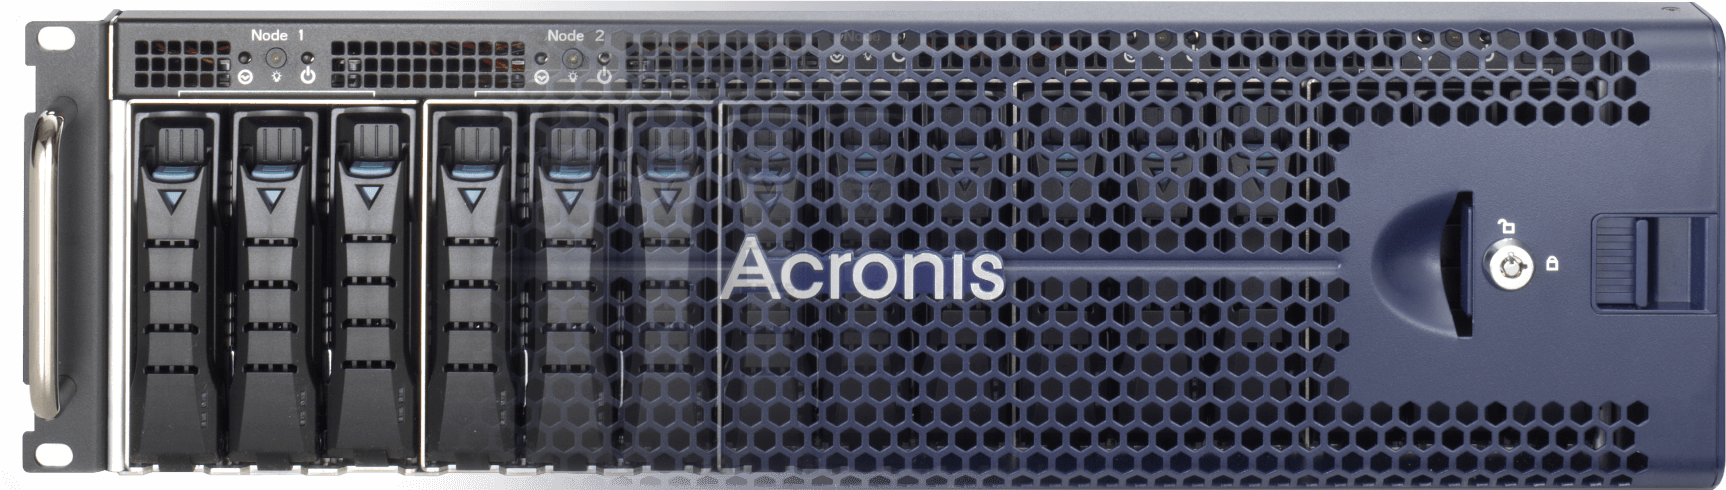 Cyber appliance Acronis